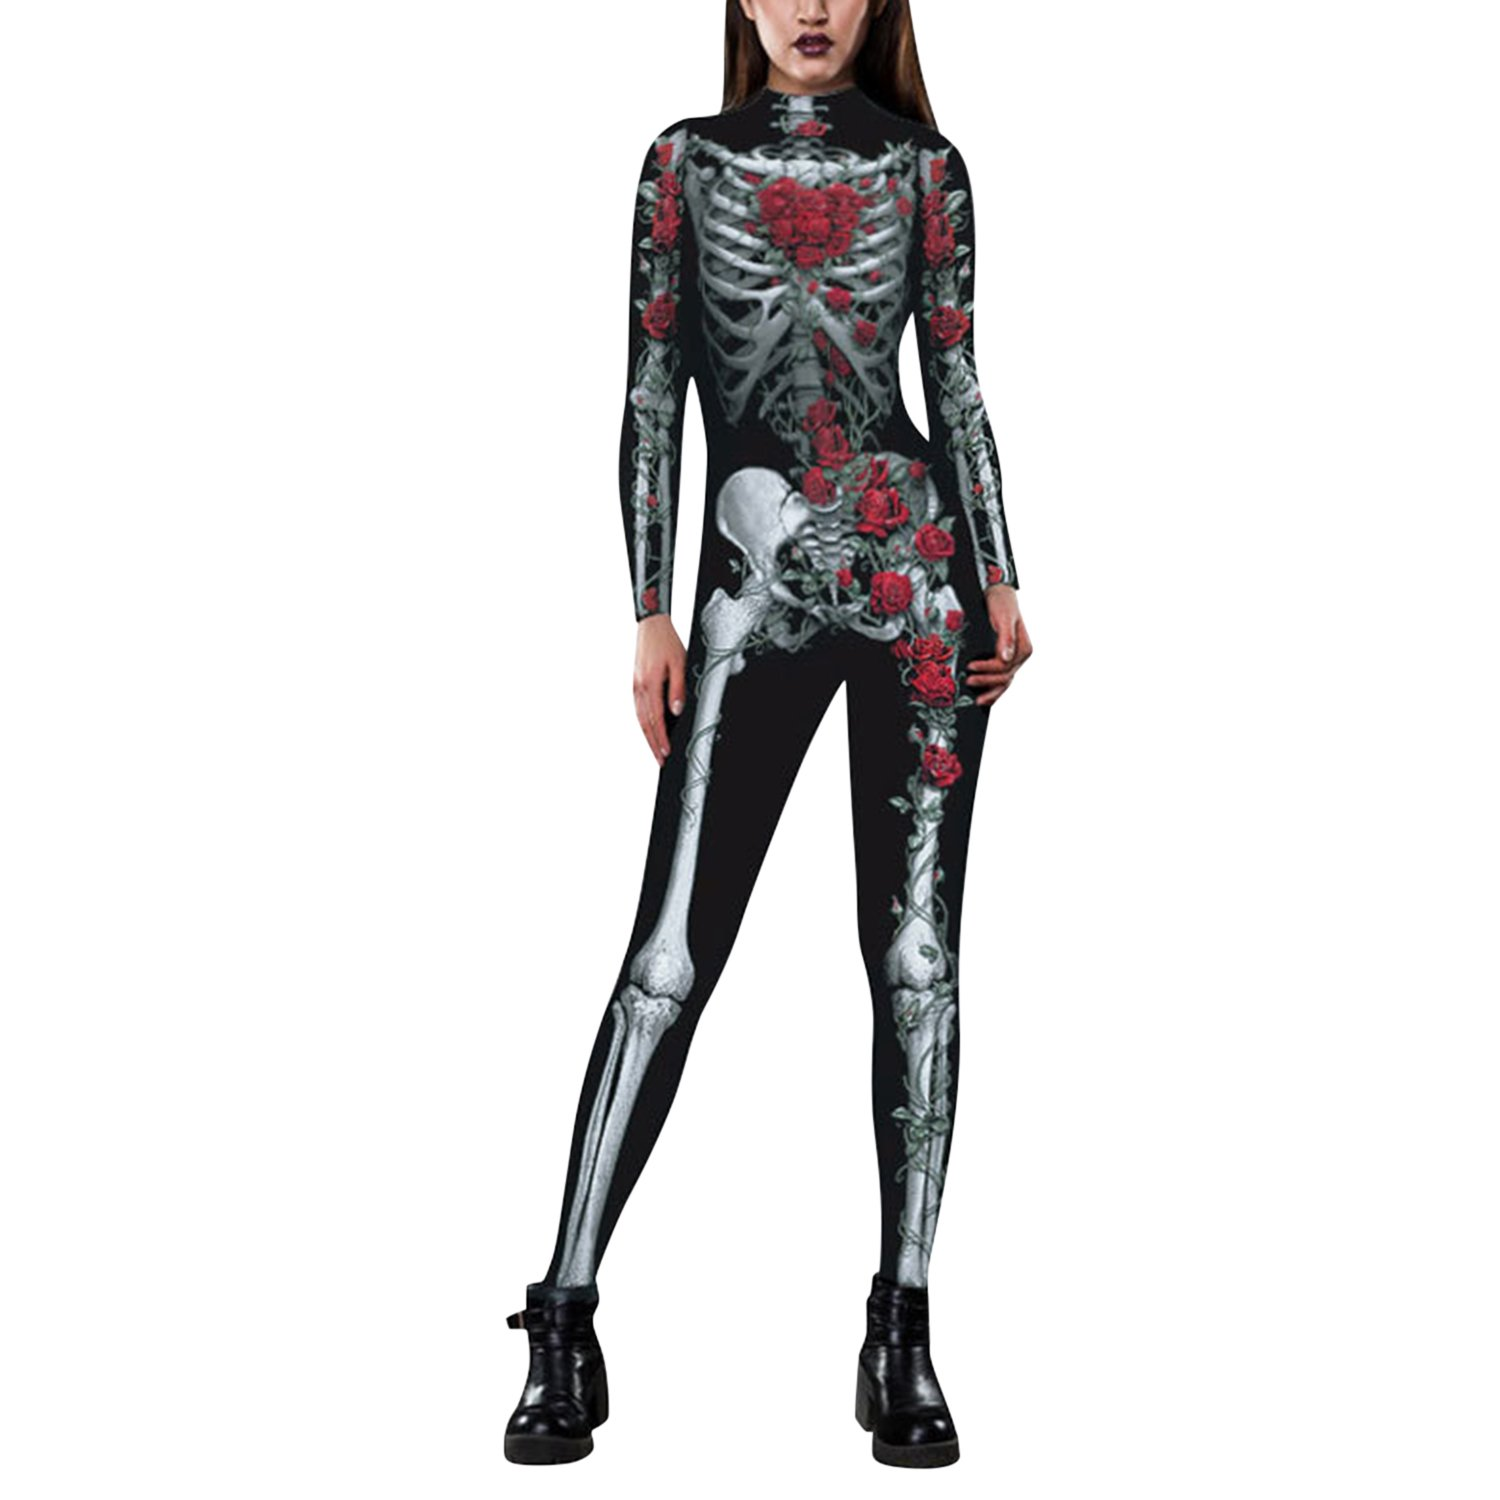 Lisli Womens Halloween Skeleton Print Catsuit Adult Onepiece Full Bodysuit Costume by Lisli